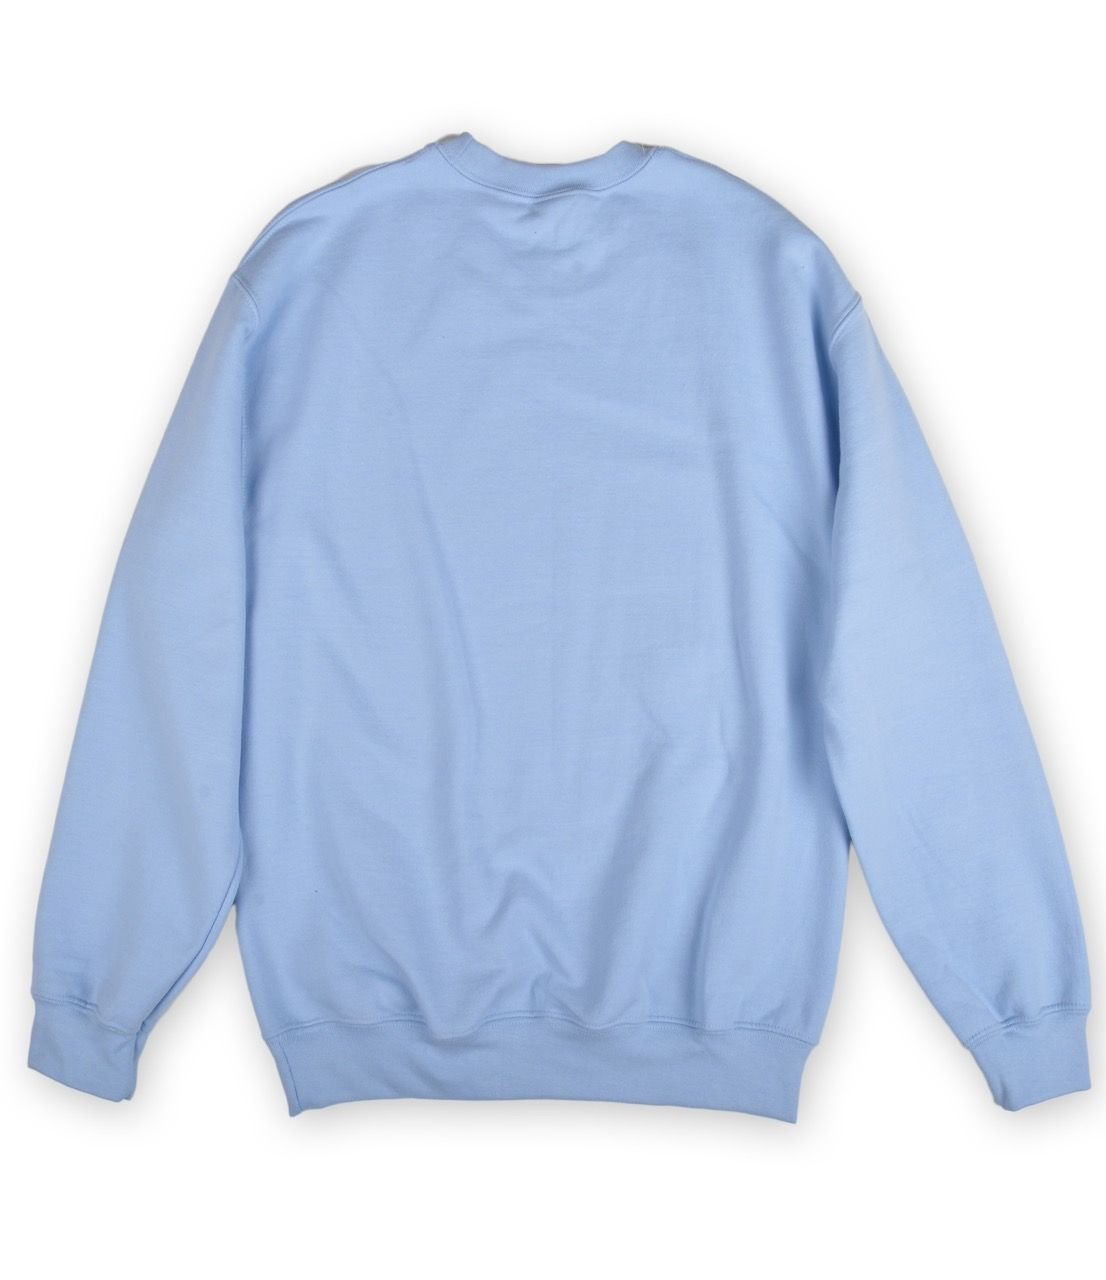 Poloshow Sweater lightblue 2